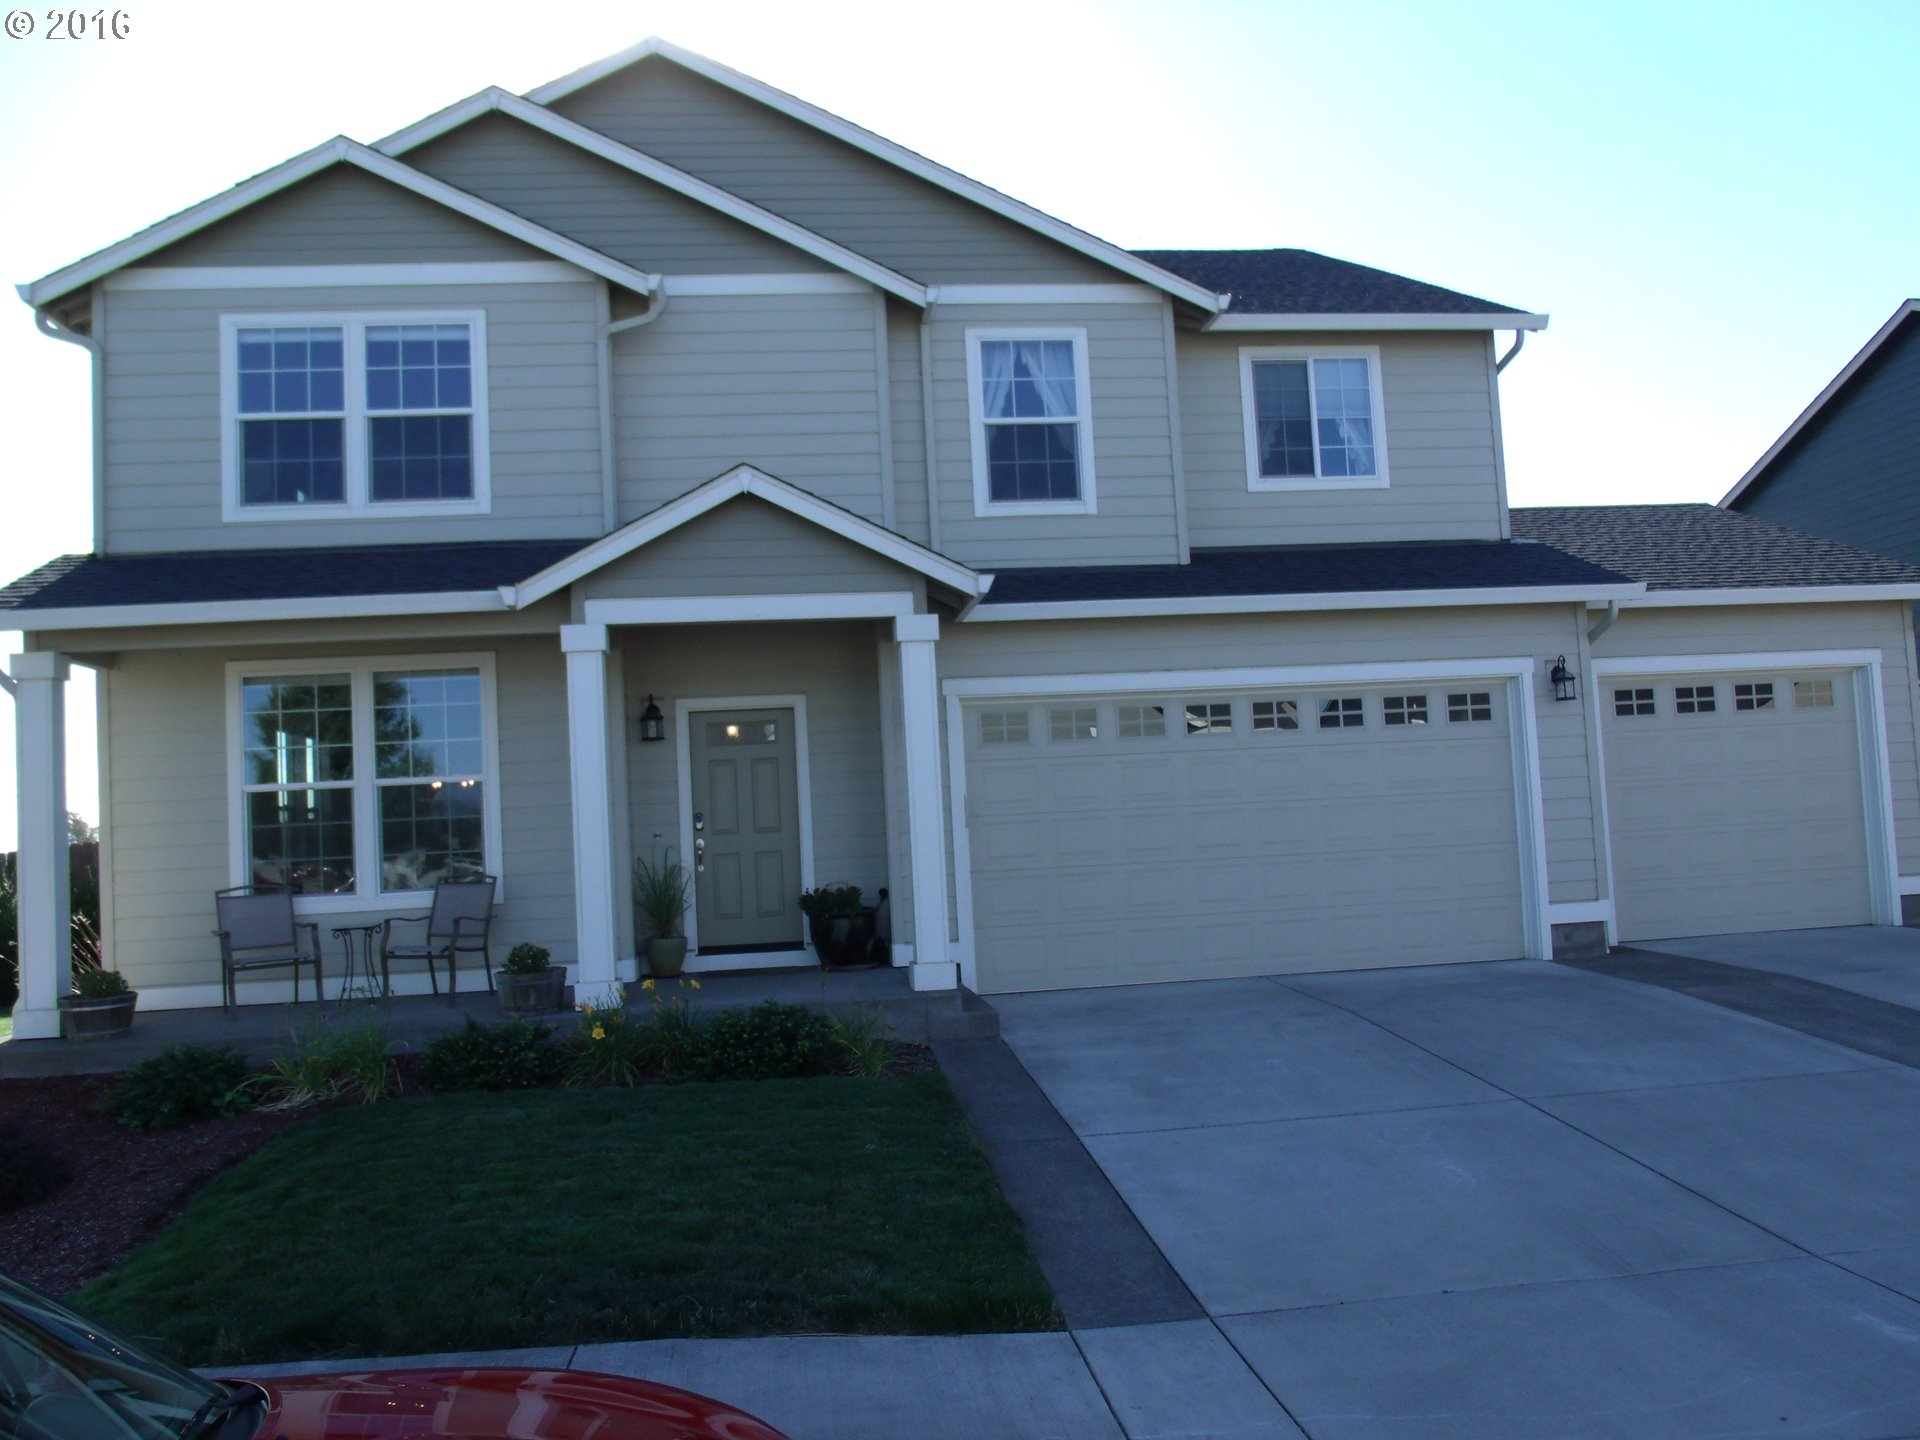 junction city oregon homes and real estate for sale from